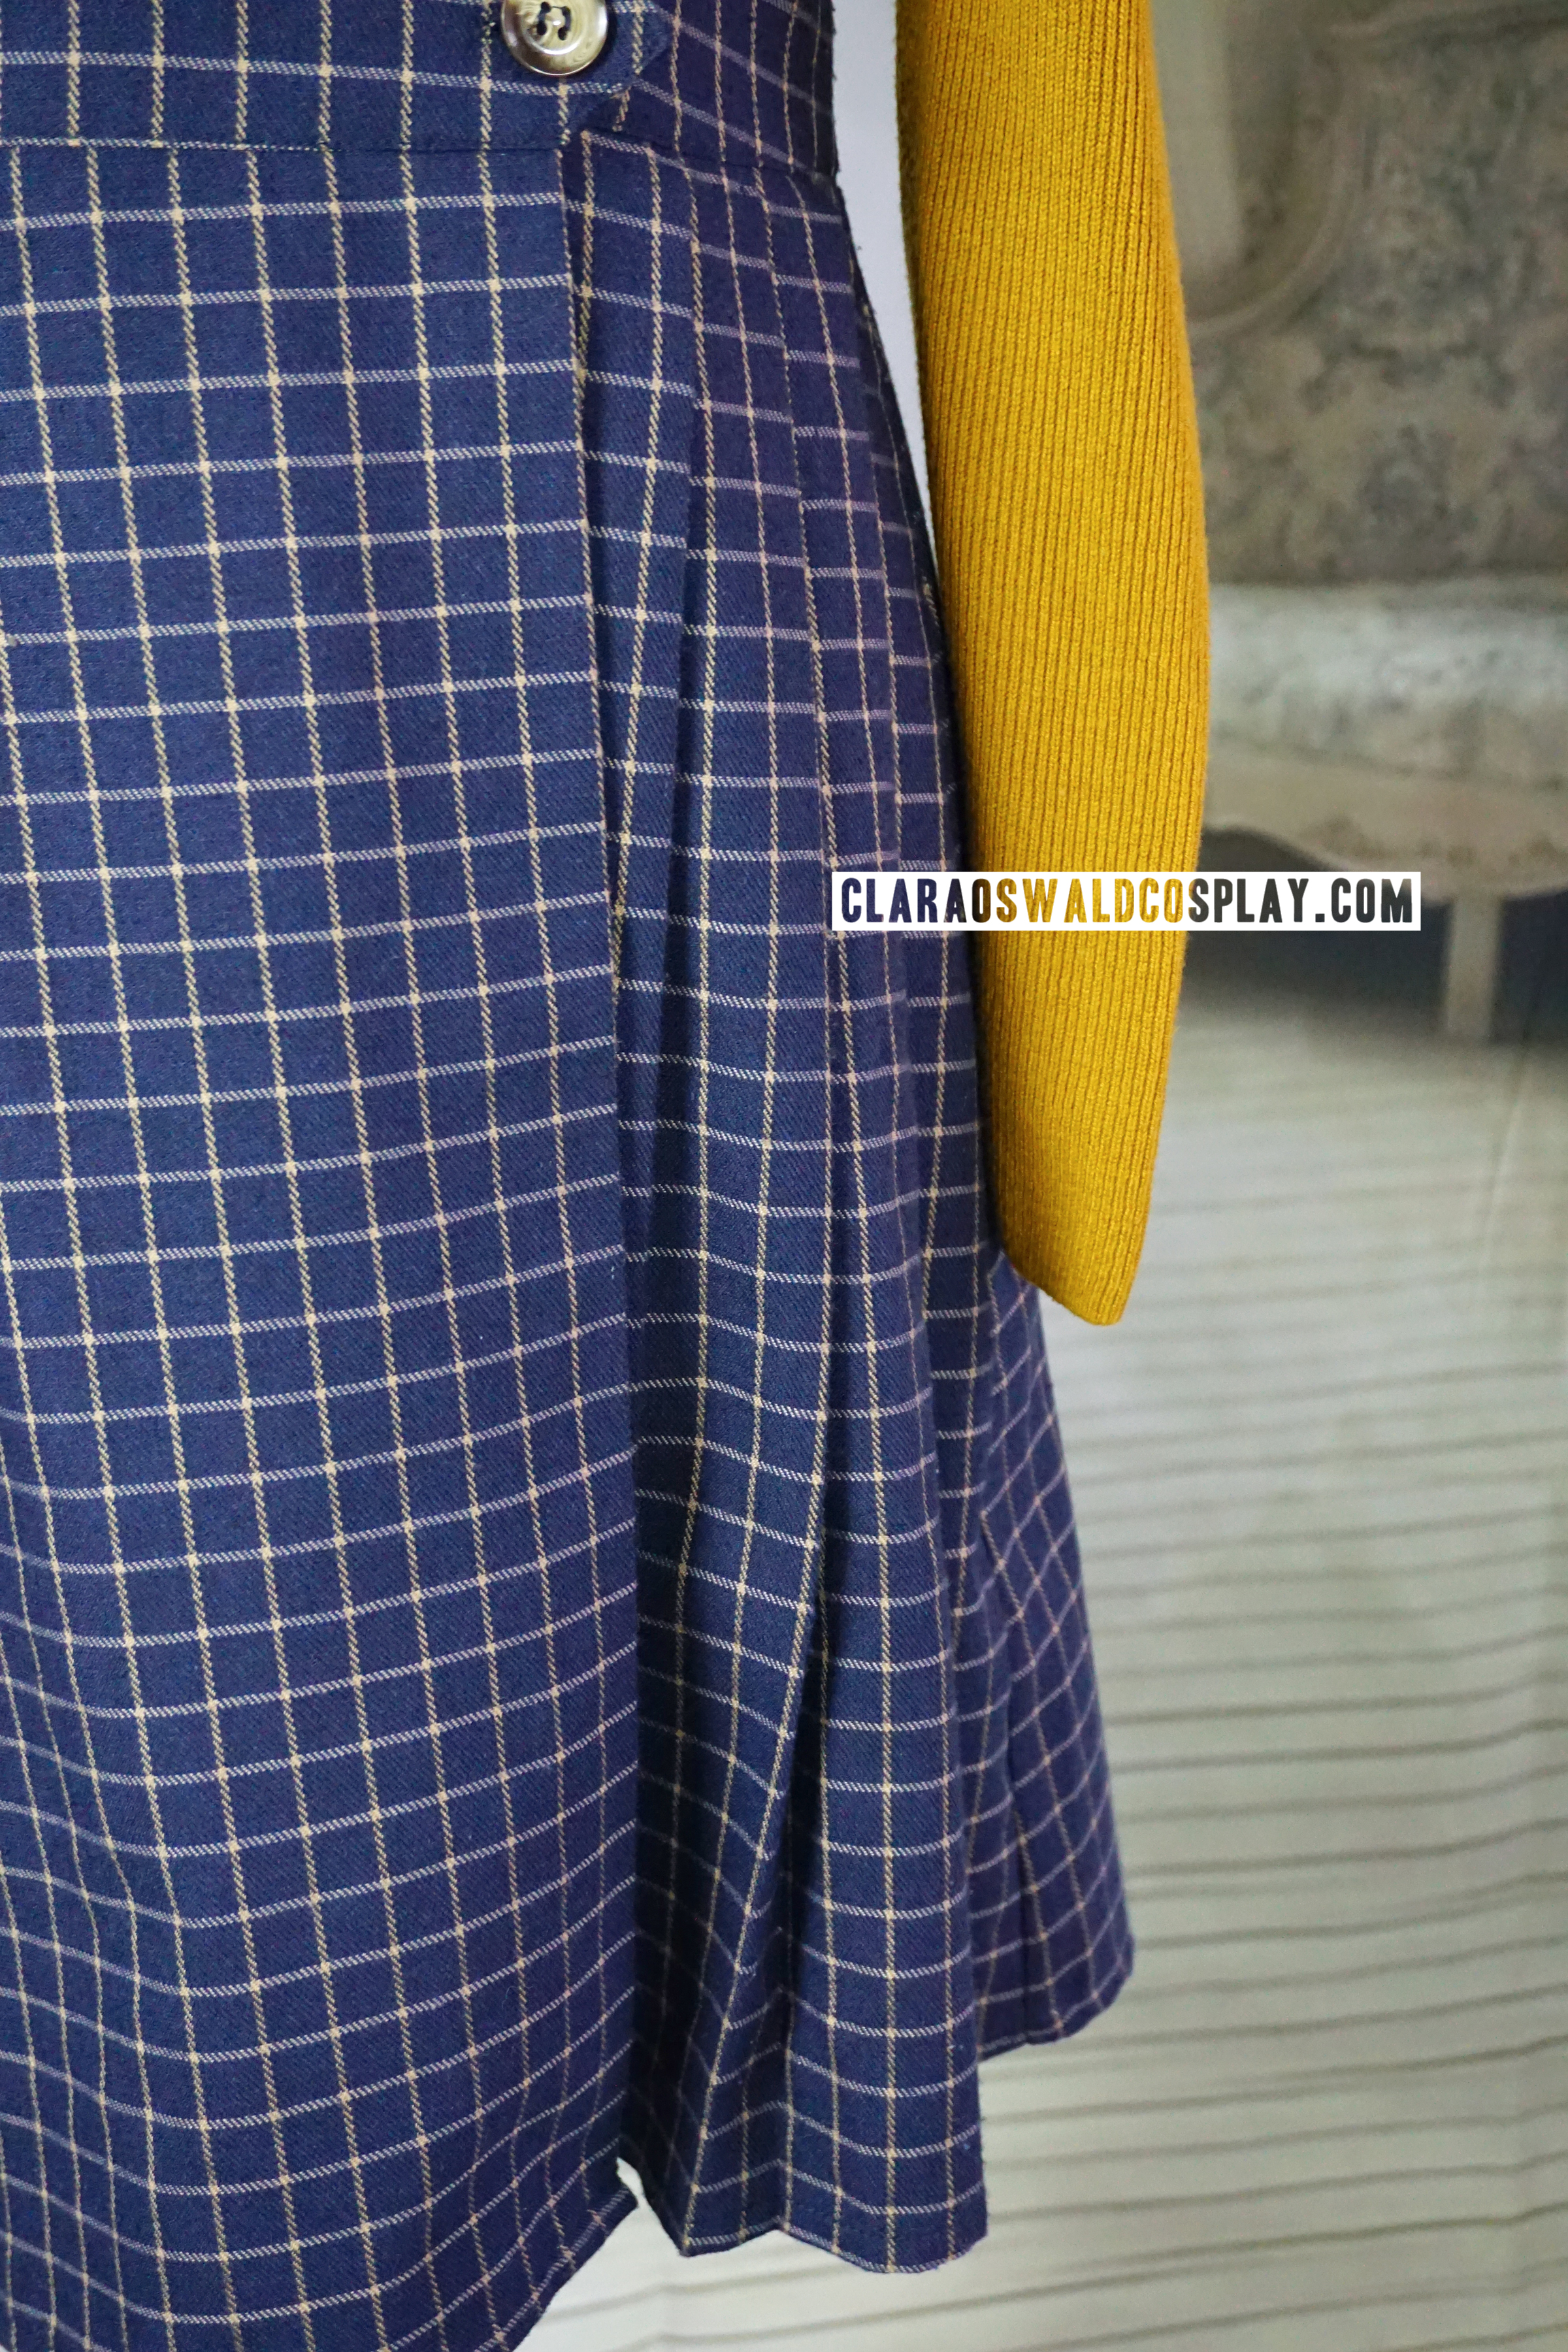 The Miss Patina Primrose Pinafore has some cute pleats